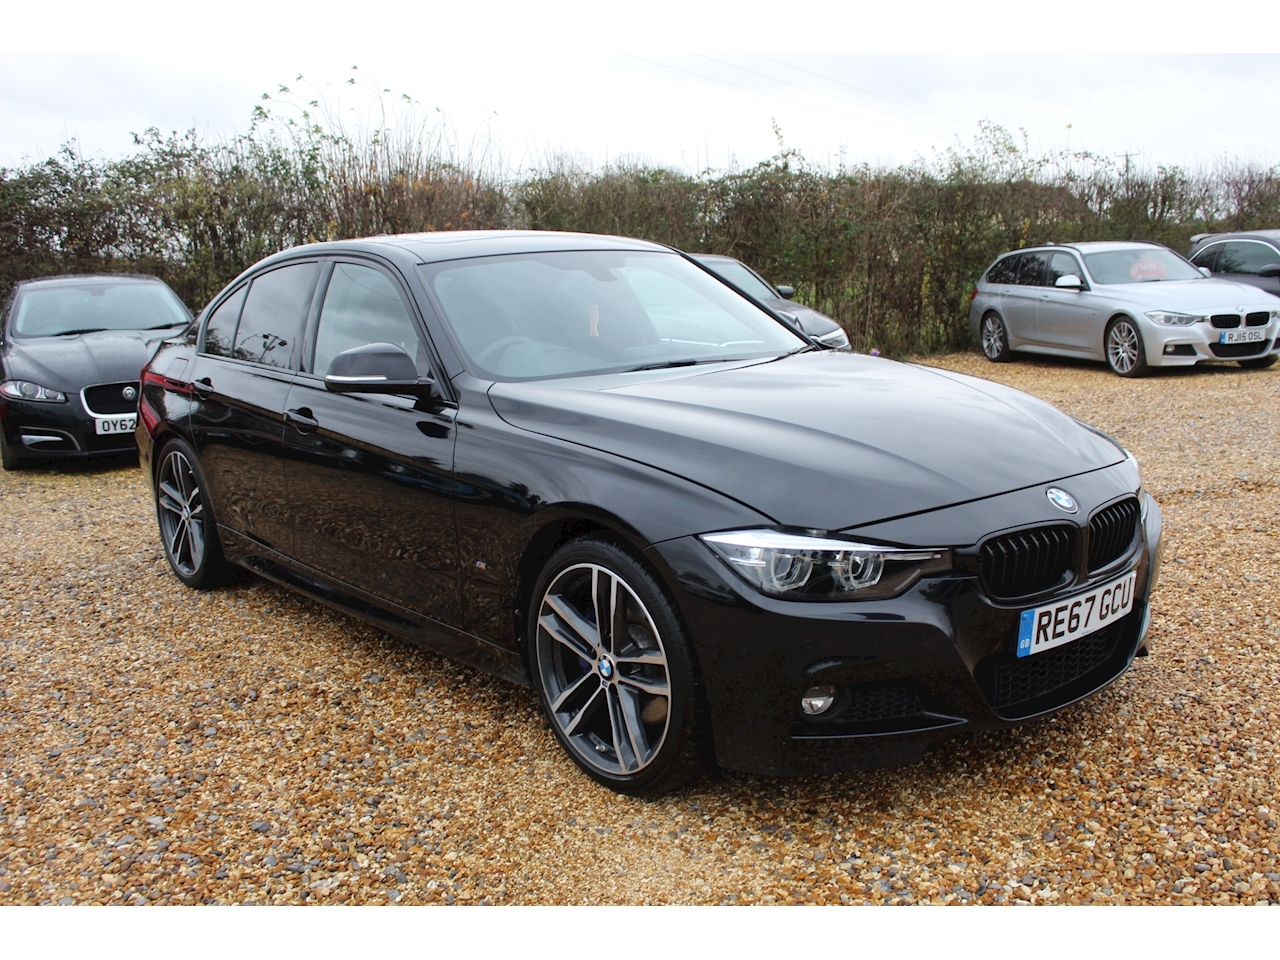 BMW 2.0 330e 7.6kWh M Sport Shadow Edition Saloon 4dr Petrol Plug-in Hybrid Auto (s/s) (252 ps)